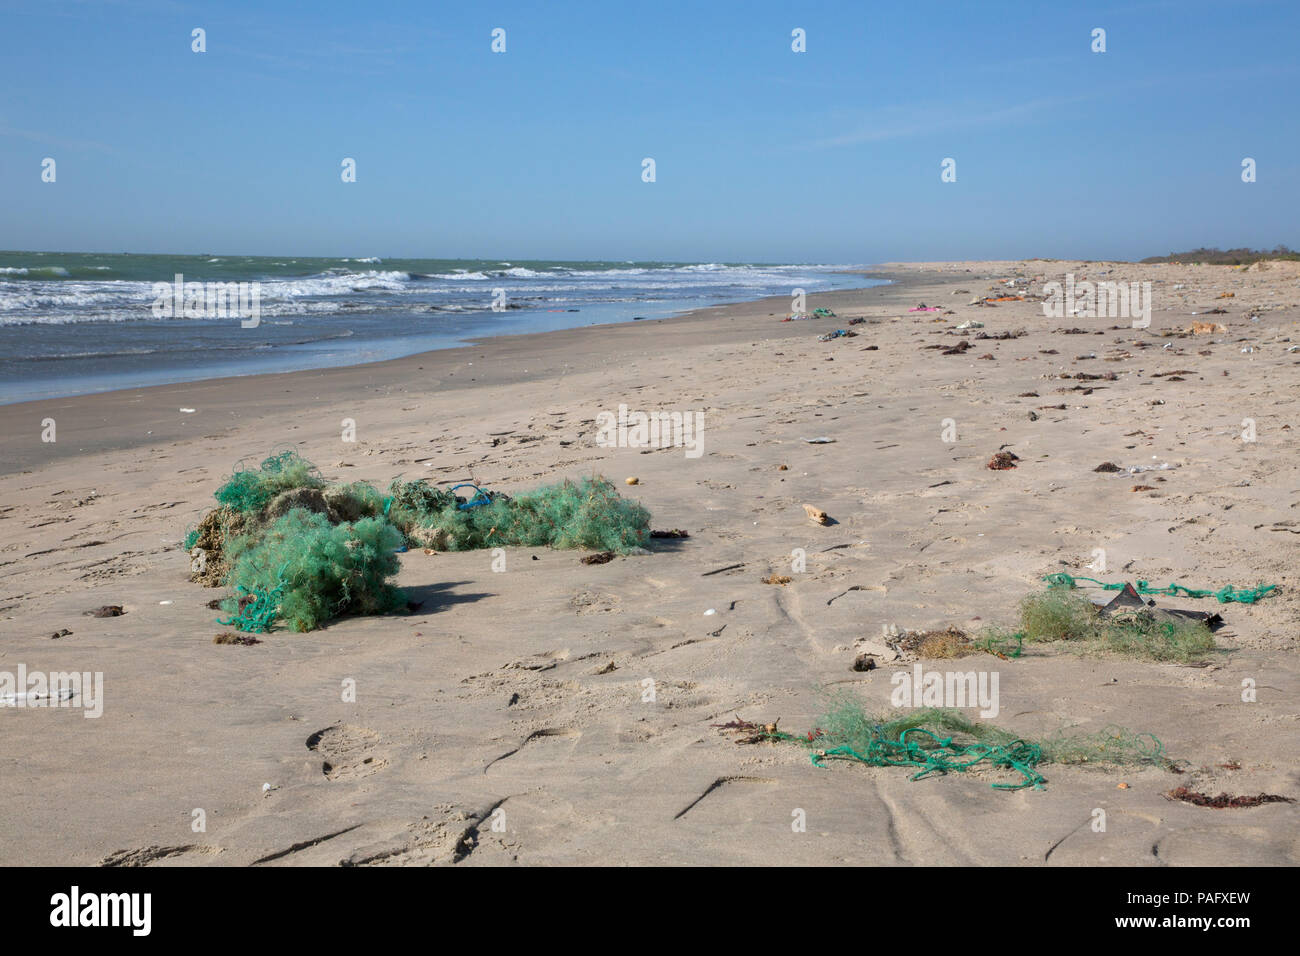 Discarded plastic fishing nets washed-up on beach, Tanji, The Gambia - Stock Image